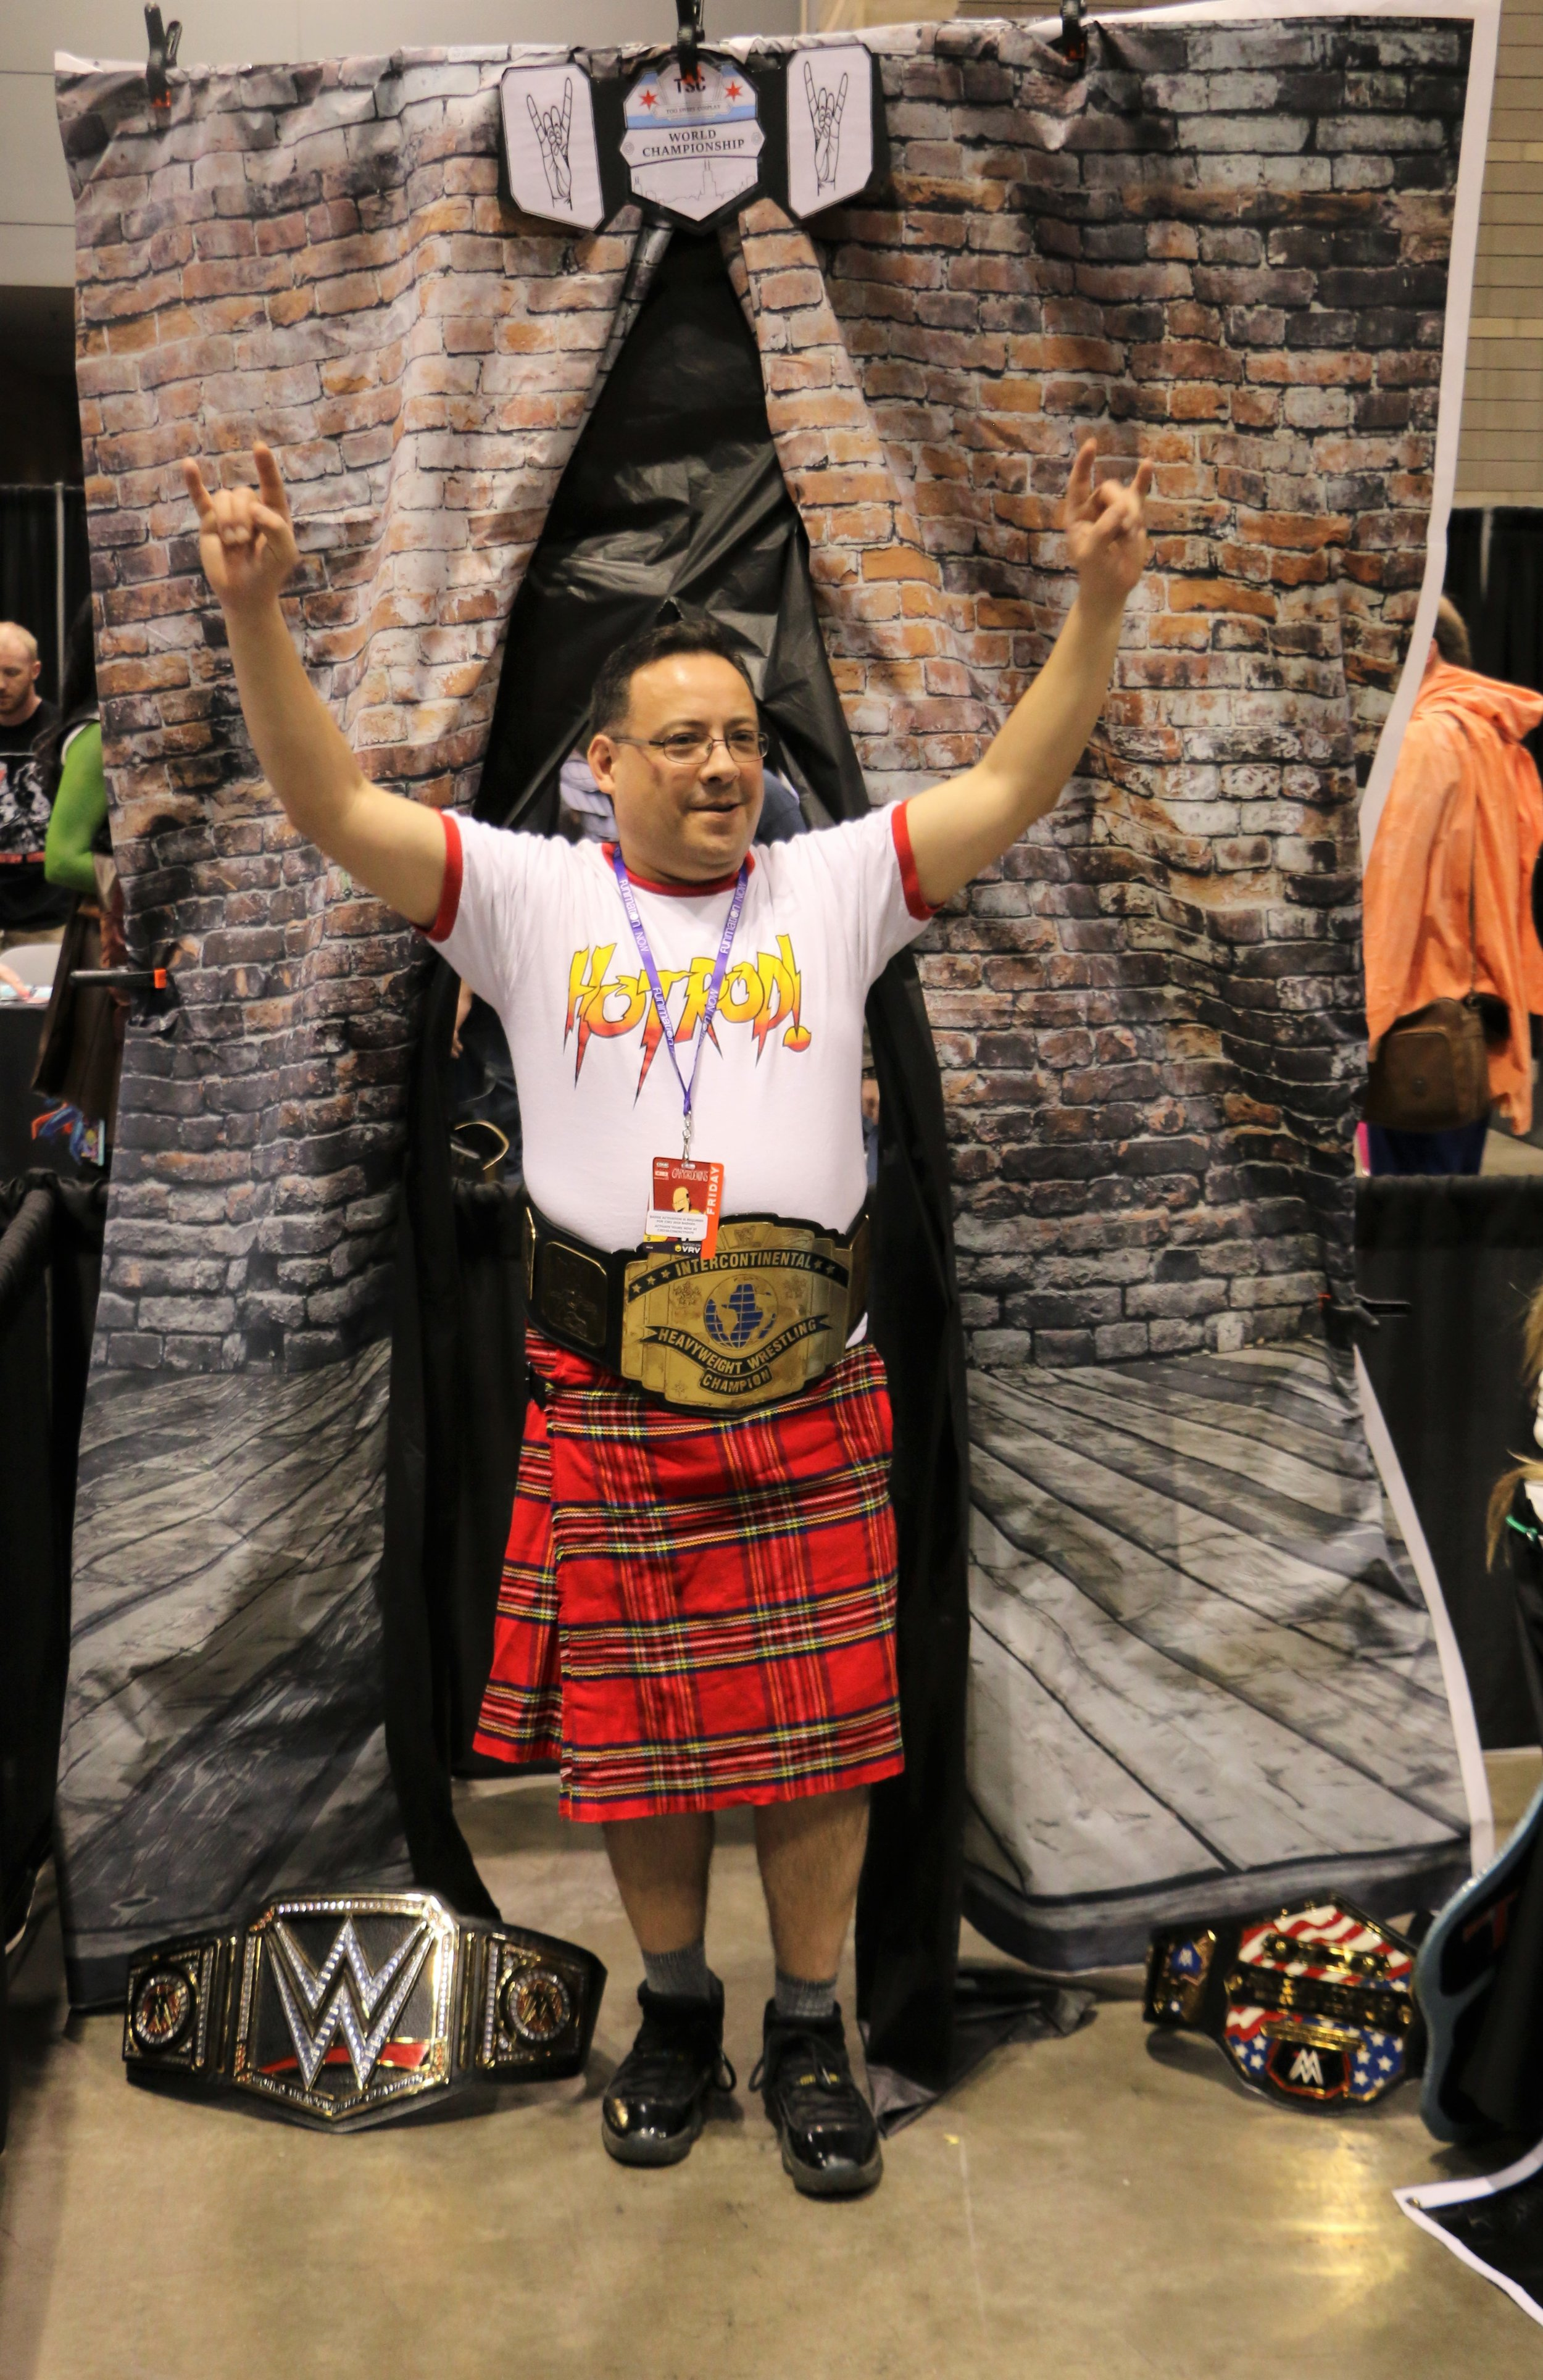 Rowdy Roddy Piper cosplayer at the Too Sweet Cosplay booth.